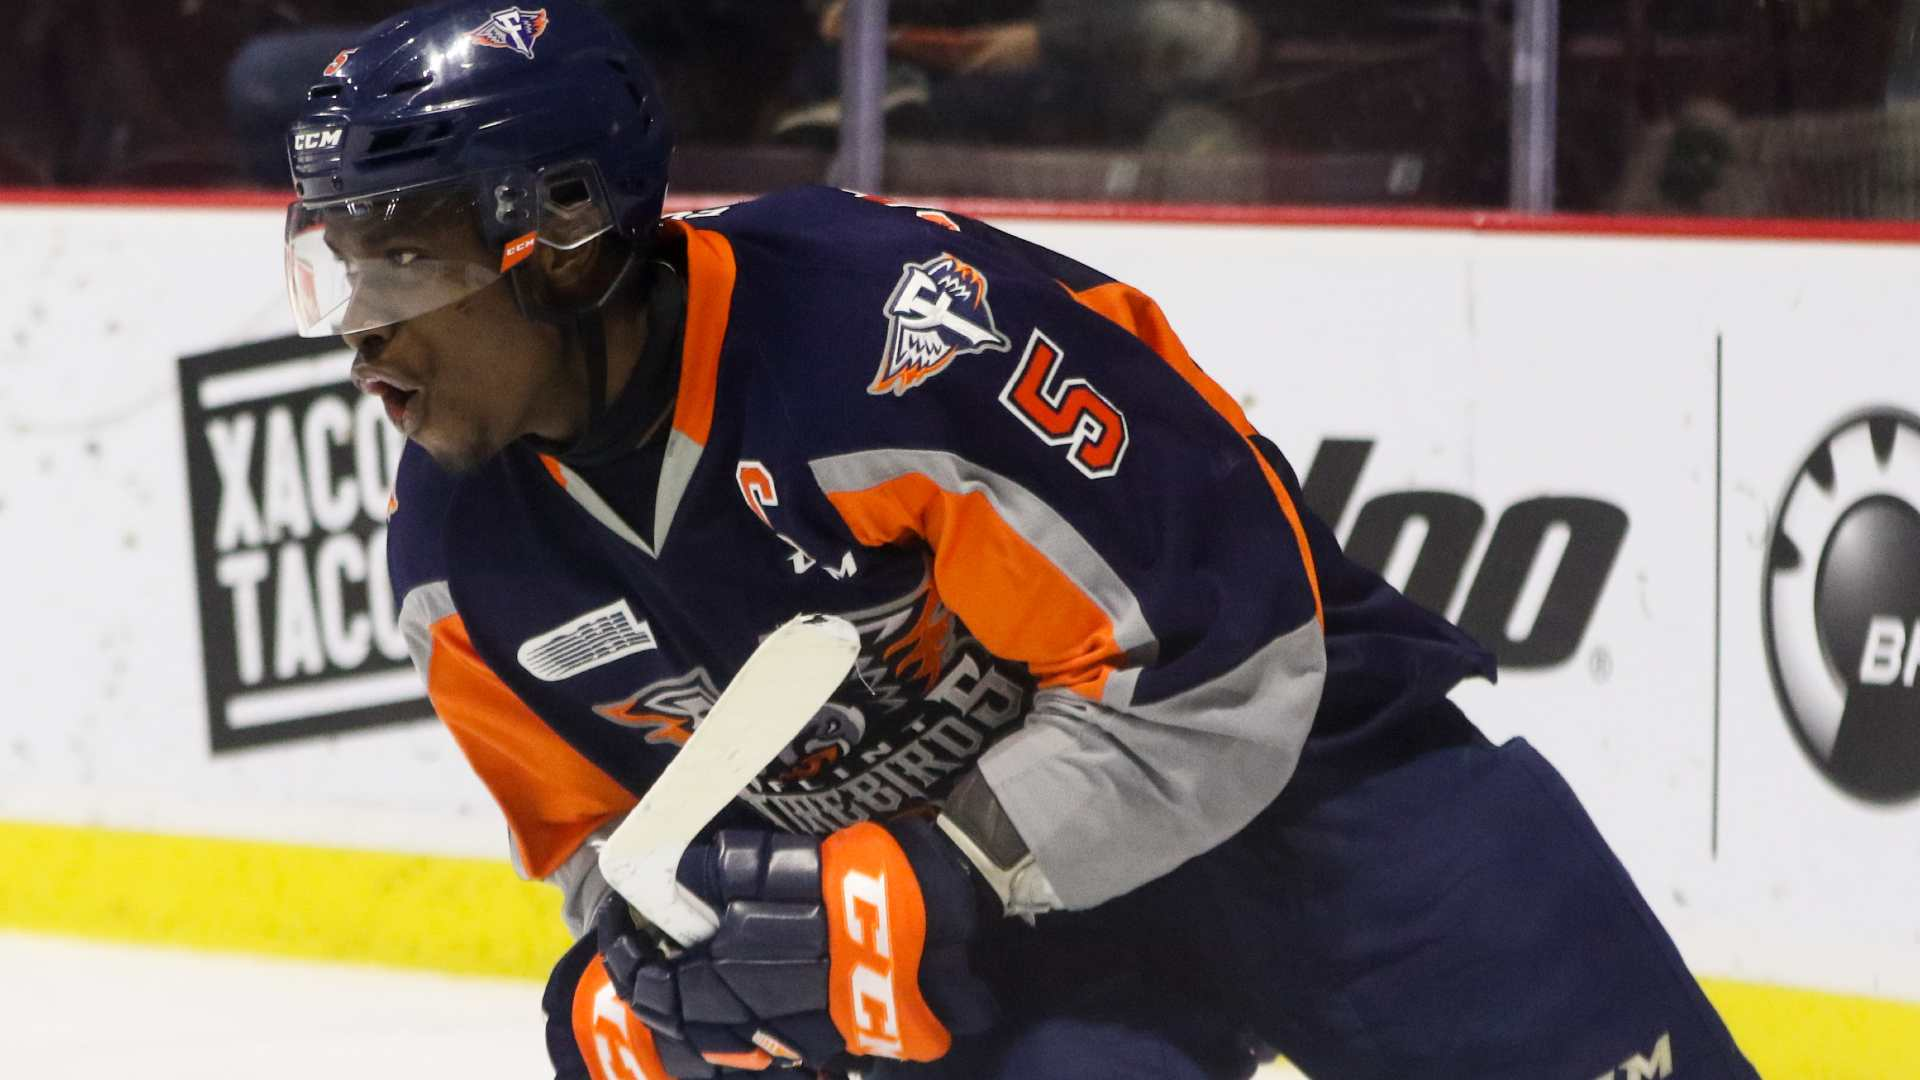 Black American hockey player taunted with racist gesture during game in Ukraine